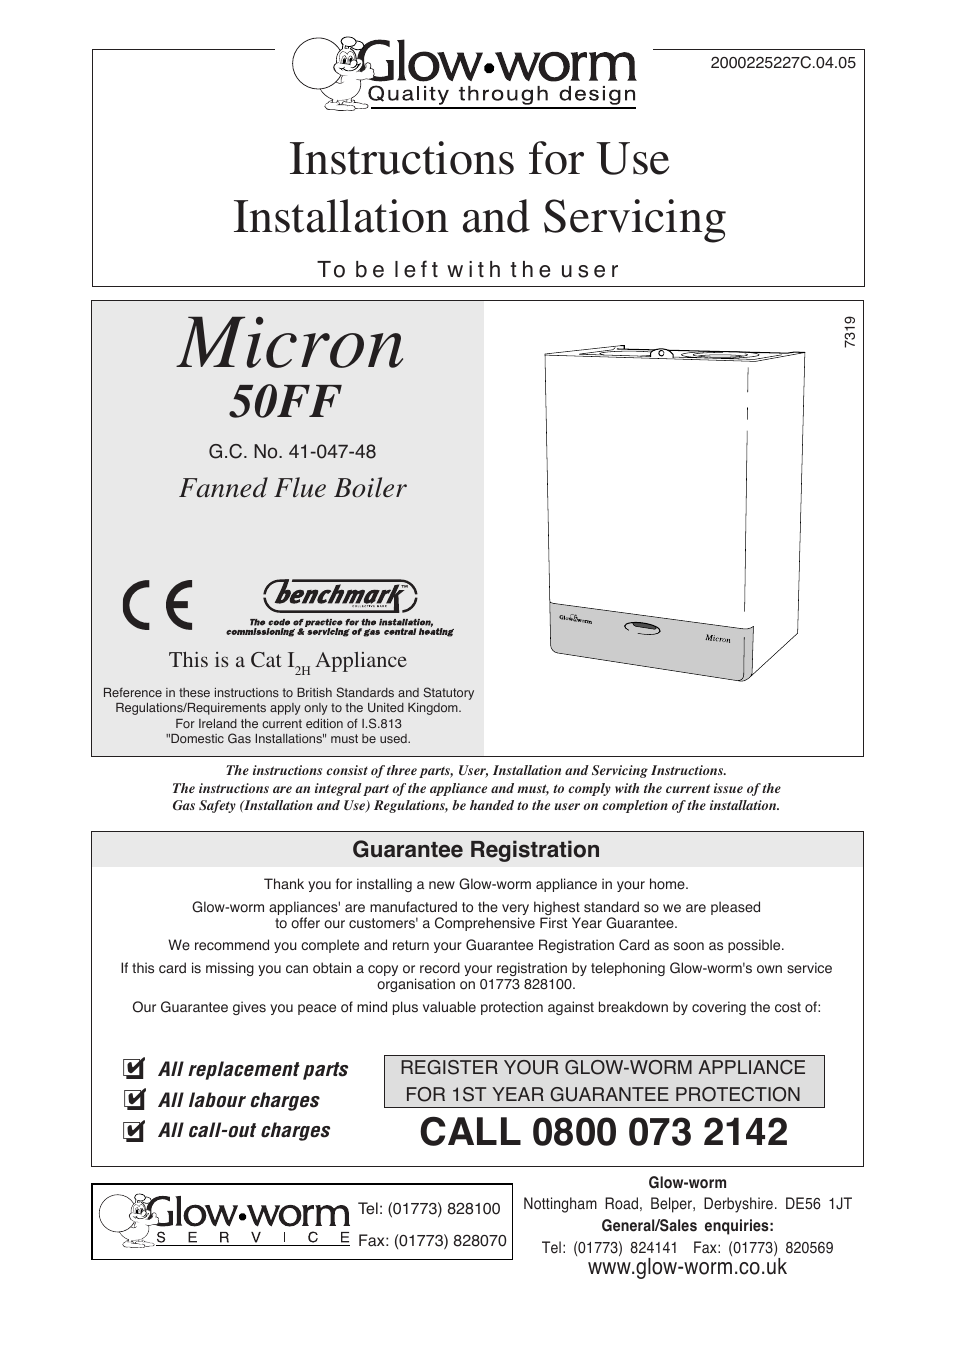 Glow-worm Micron 50FF User Manual | 28 pages